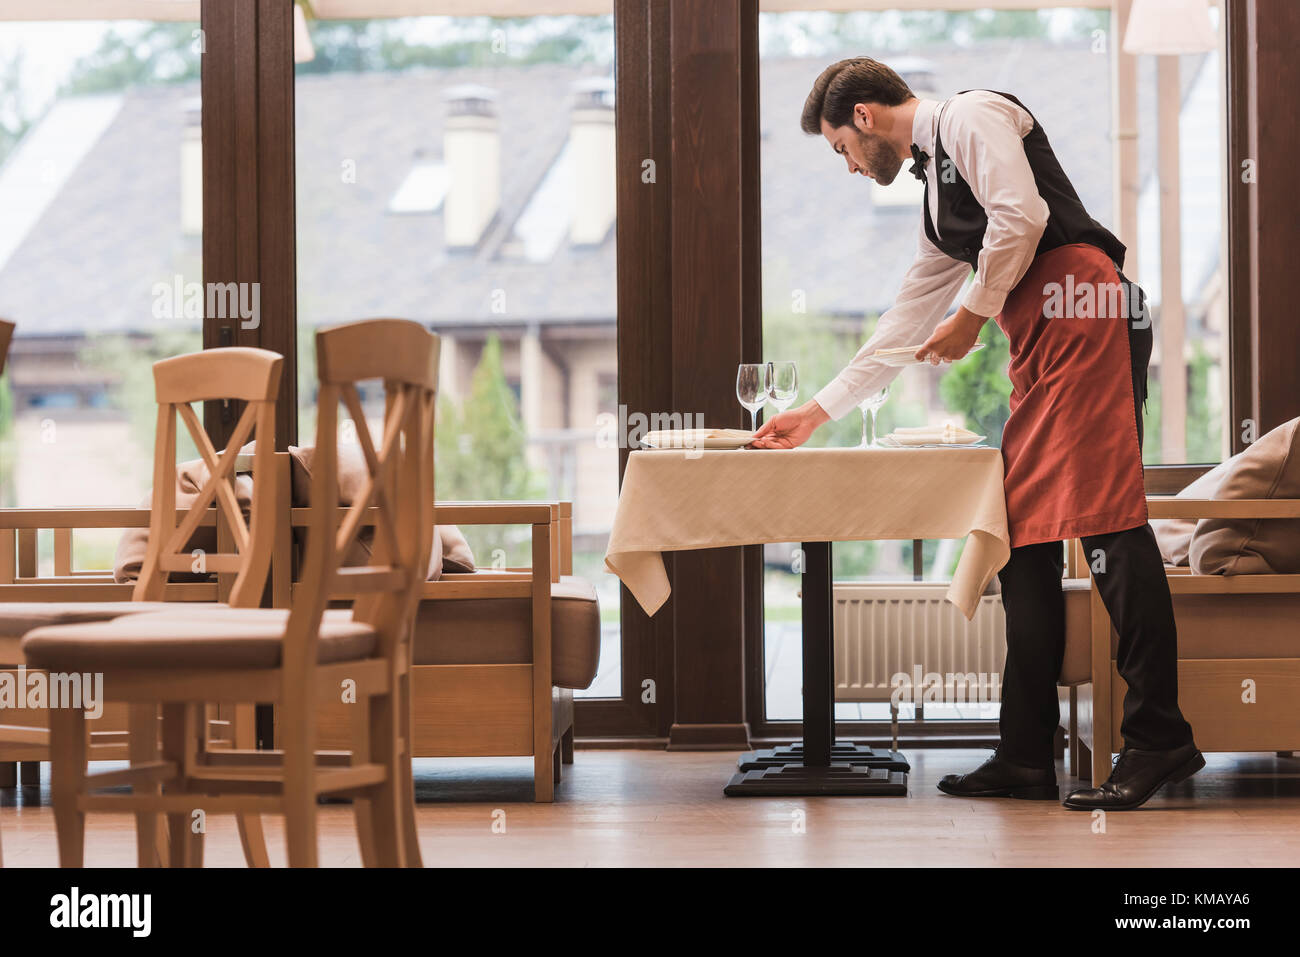 Waiter serving plates on table - Stock Image